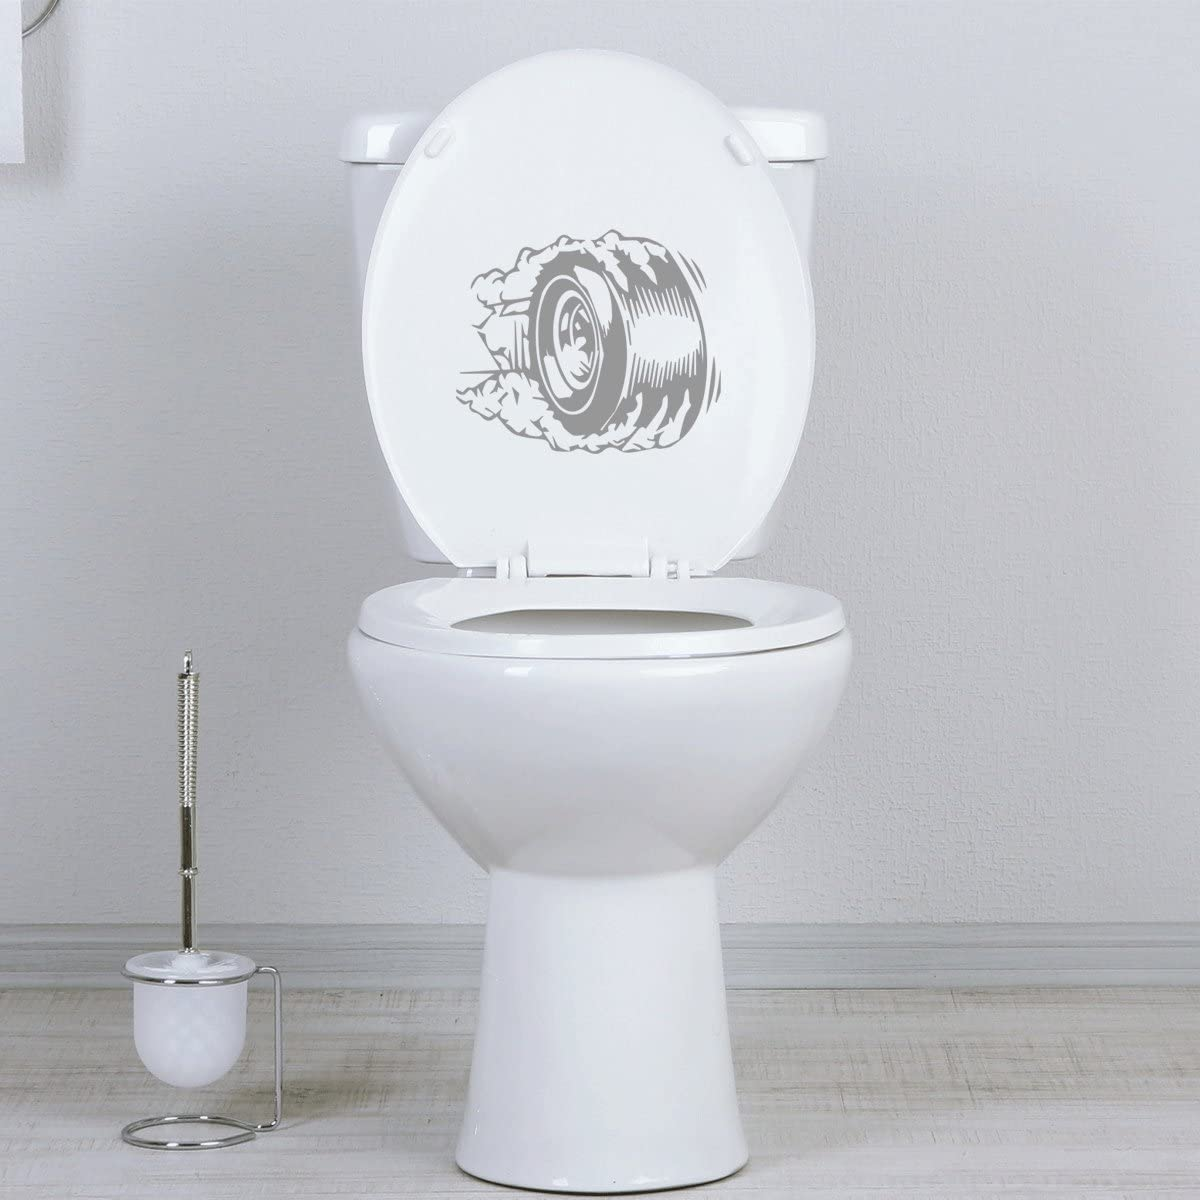 Bath Seat StickAny Bathroom Decal Series Tire Burnout Sticker for Toilet Bowl Black